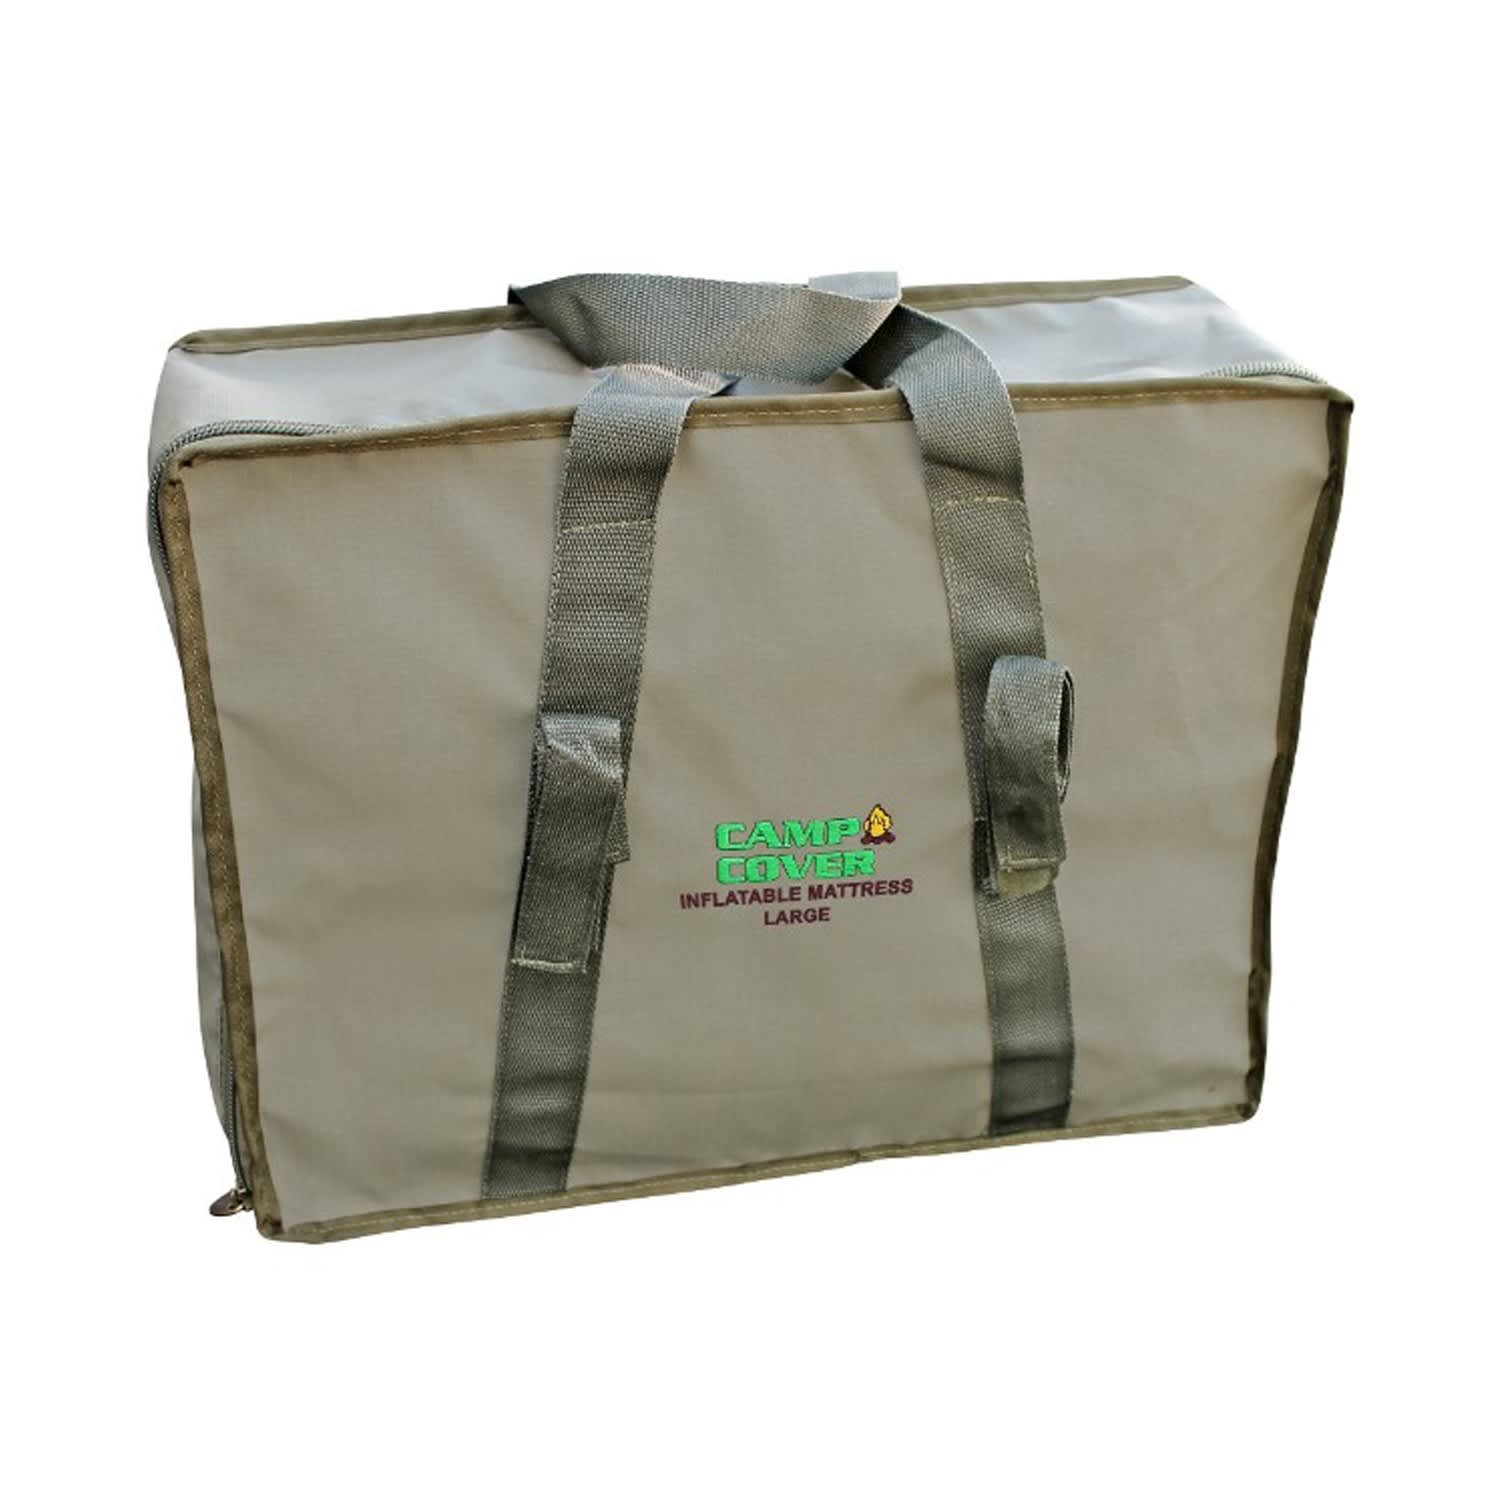 Camp Cover Deluxe Air mattress carrybag